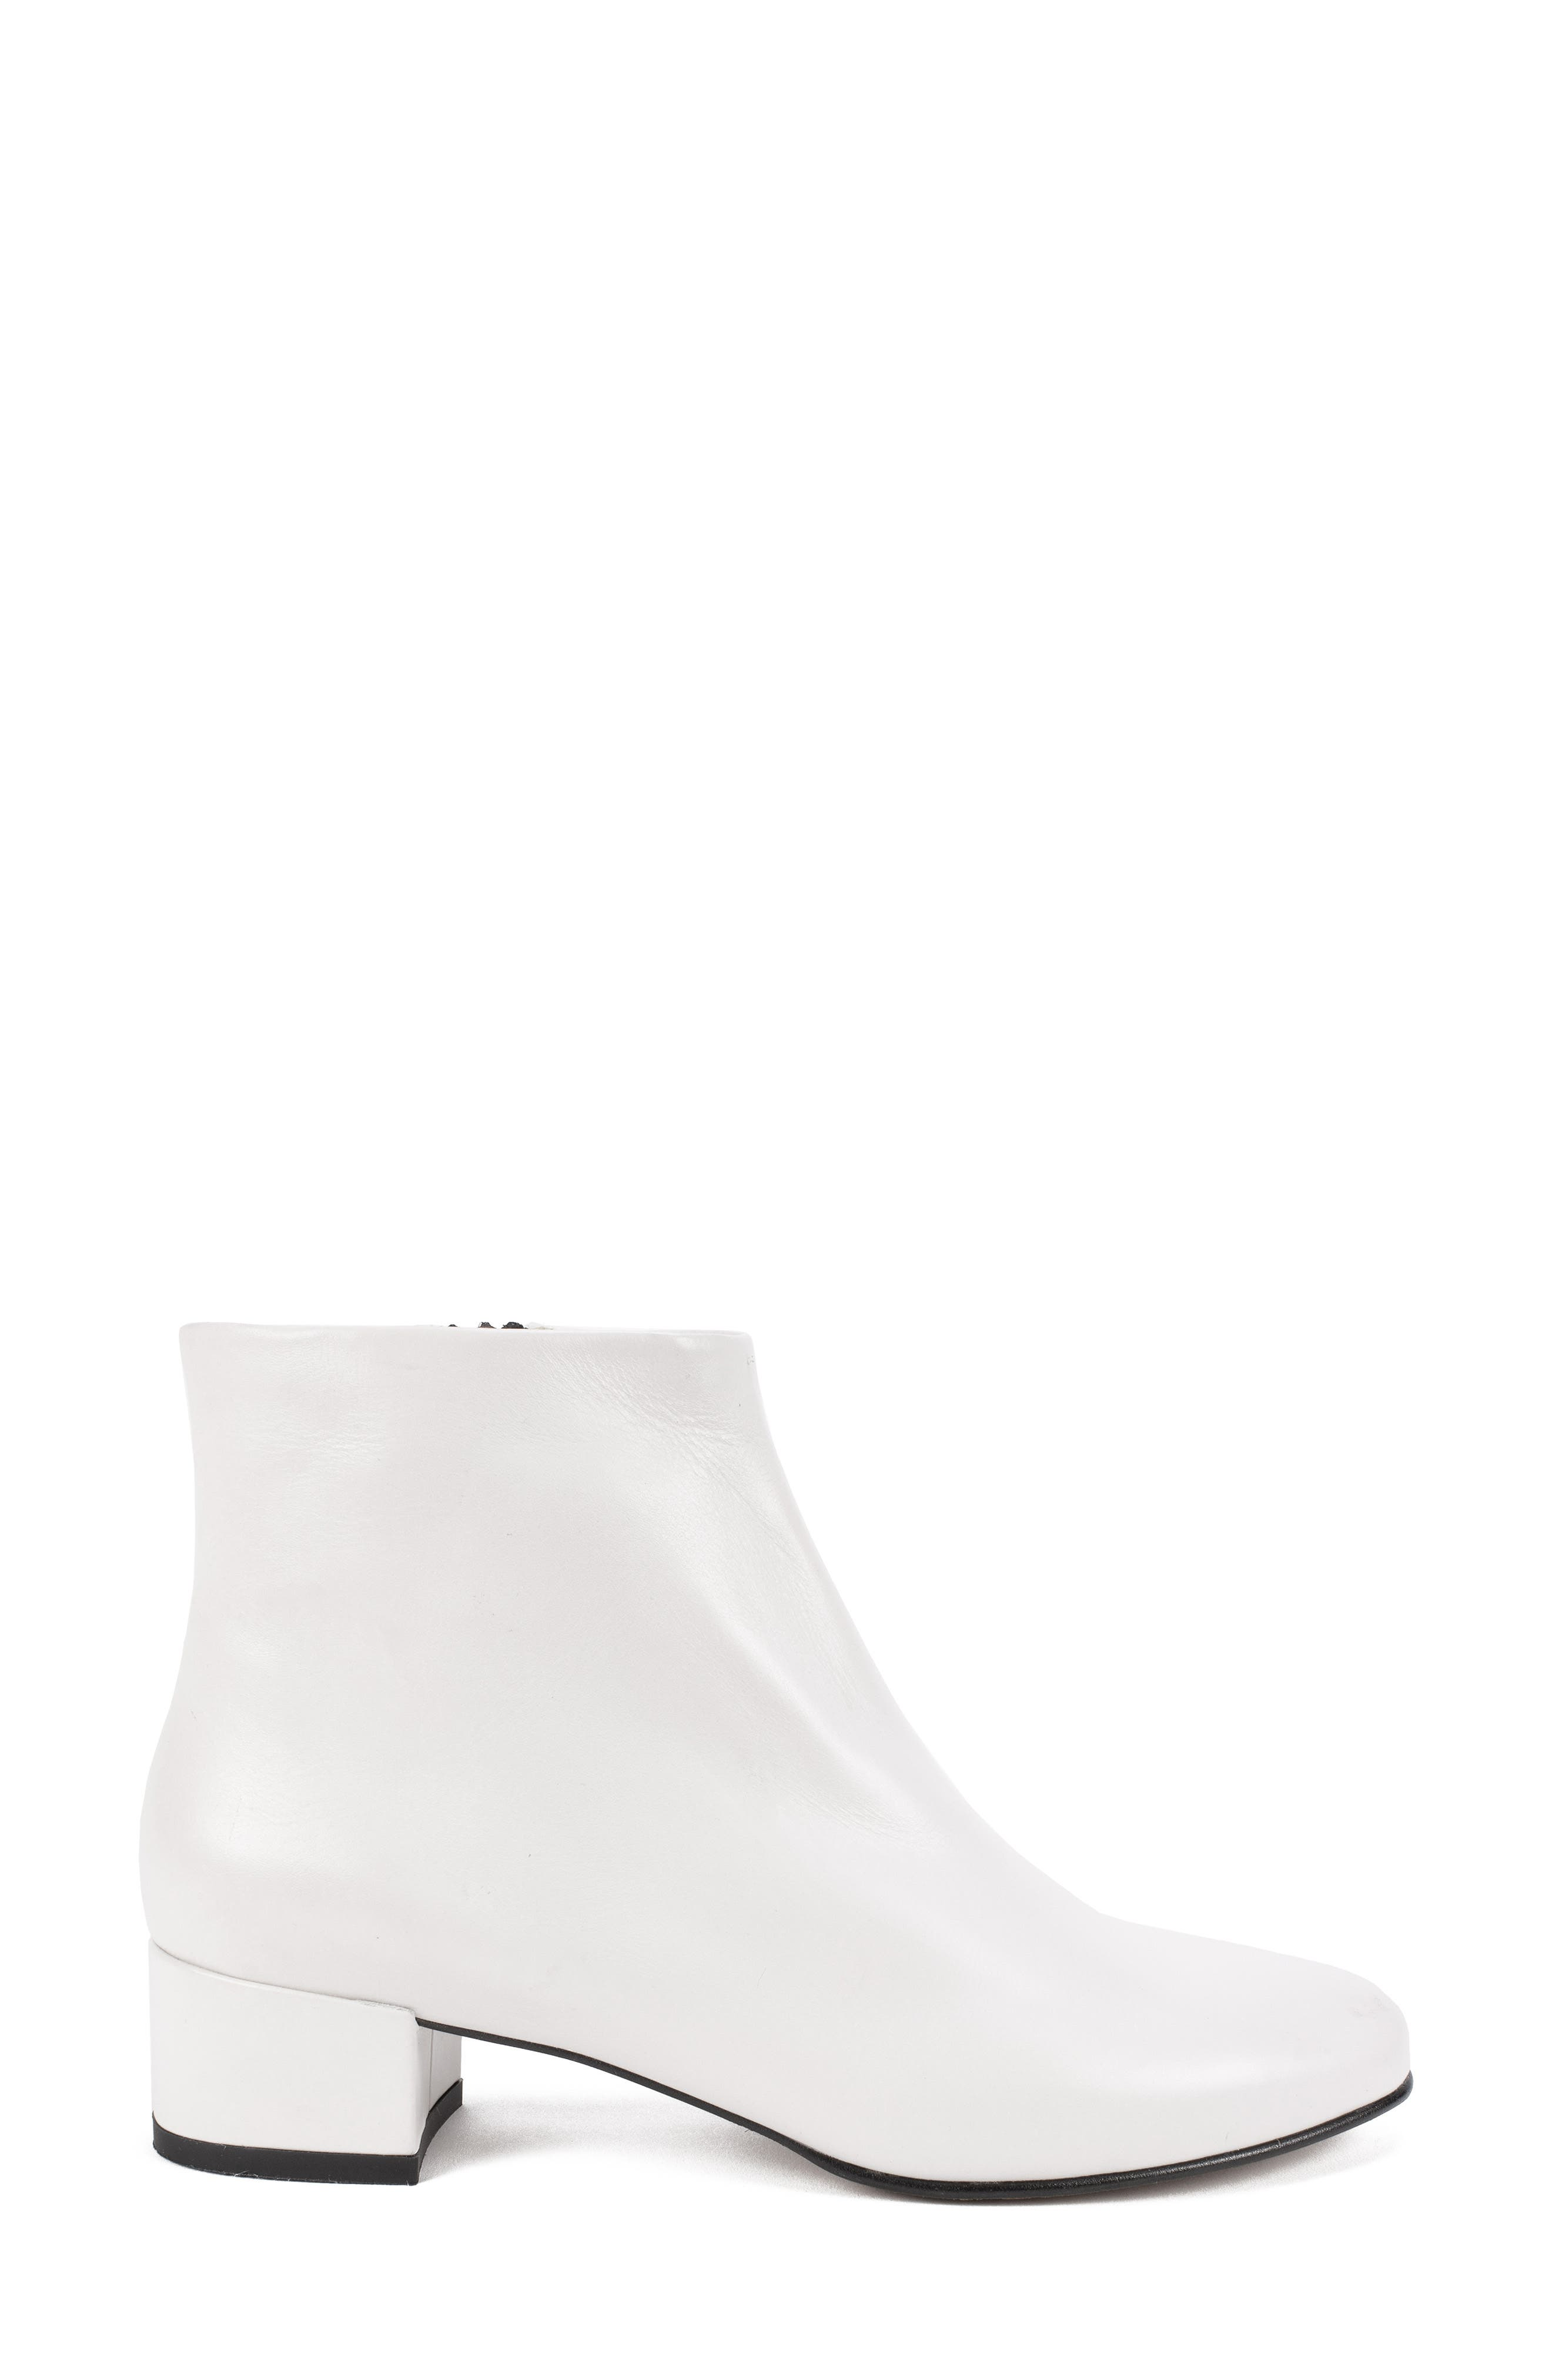 by White Mountain Jordie Block Heel Bootie,                             Alternate thumbnail 3, color,                             WHITE LEATHER